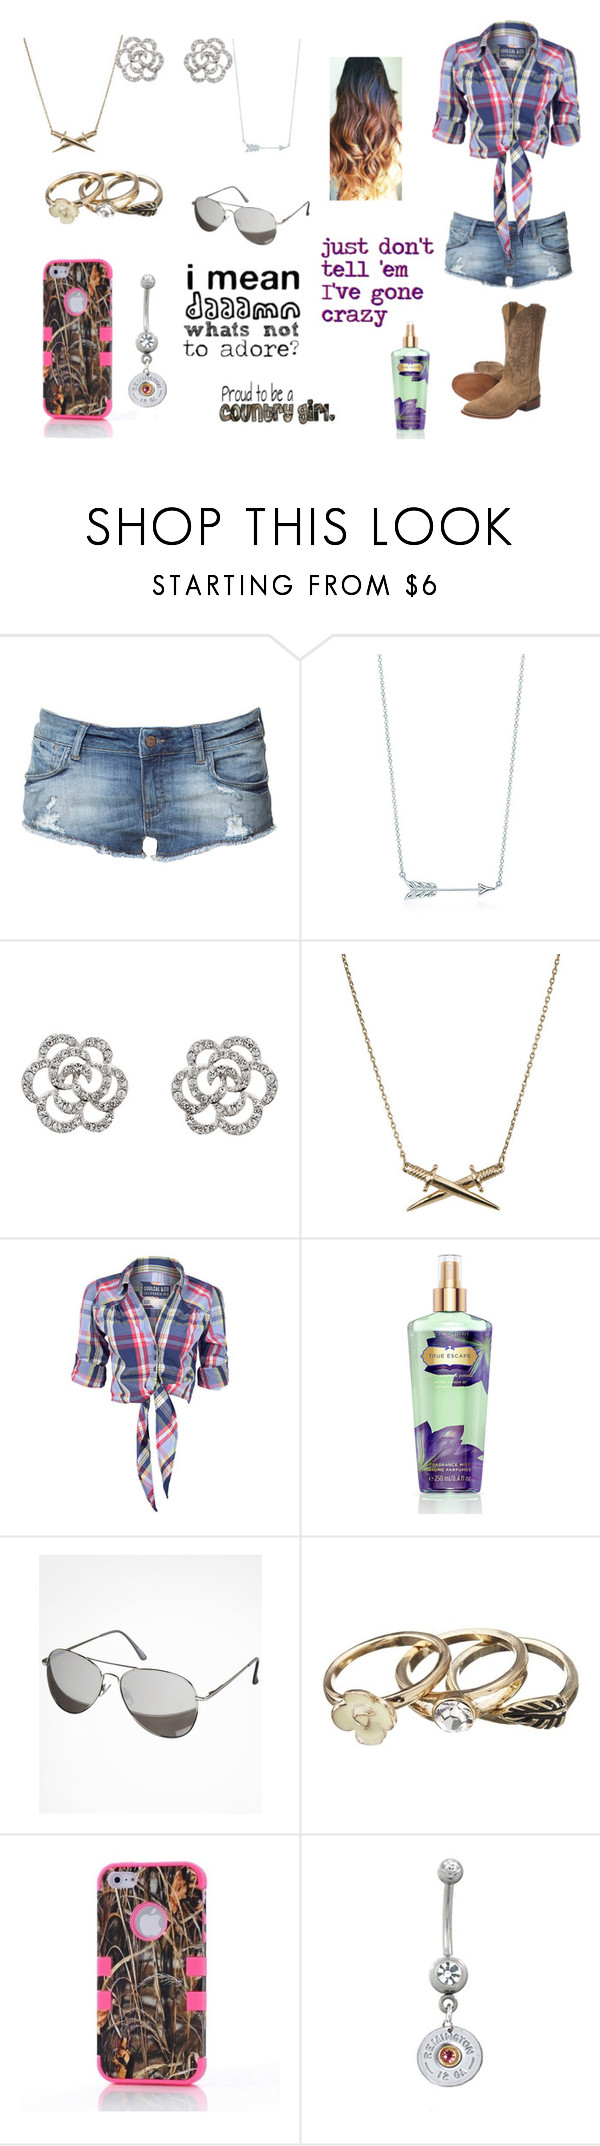 """Untitled #603"" by taylor-loomis ❤ liked on Polyvore featuring Zara, Tiffany & Co., Finesse, Wildfox, Soul Cal, Victoria's Secret and Remington"